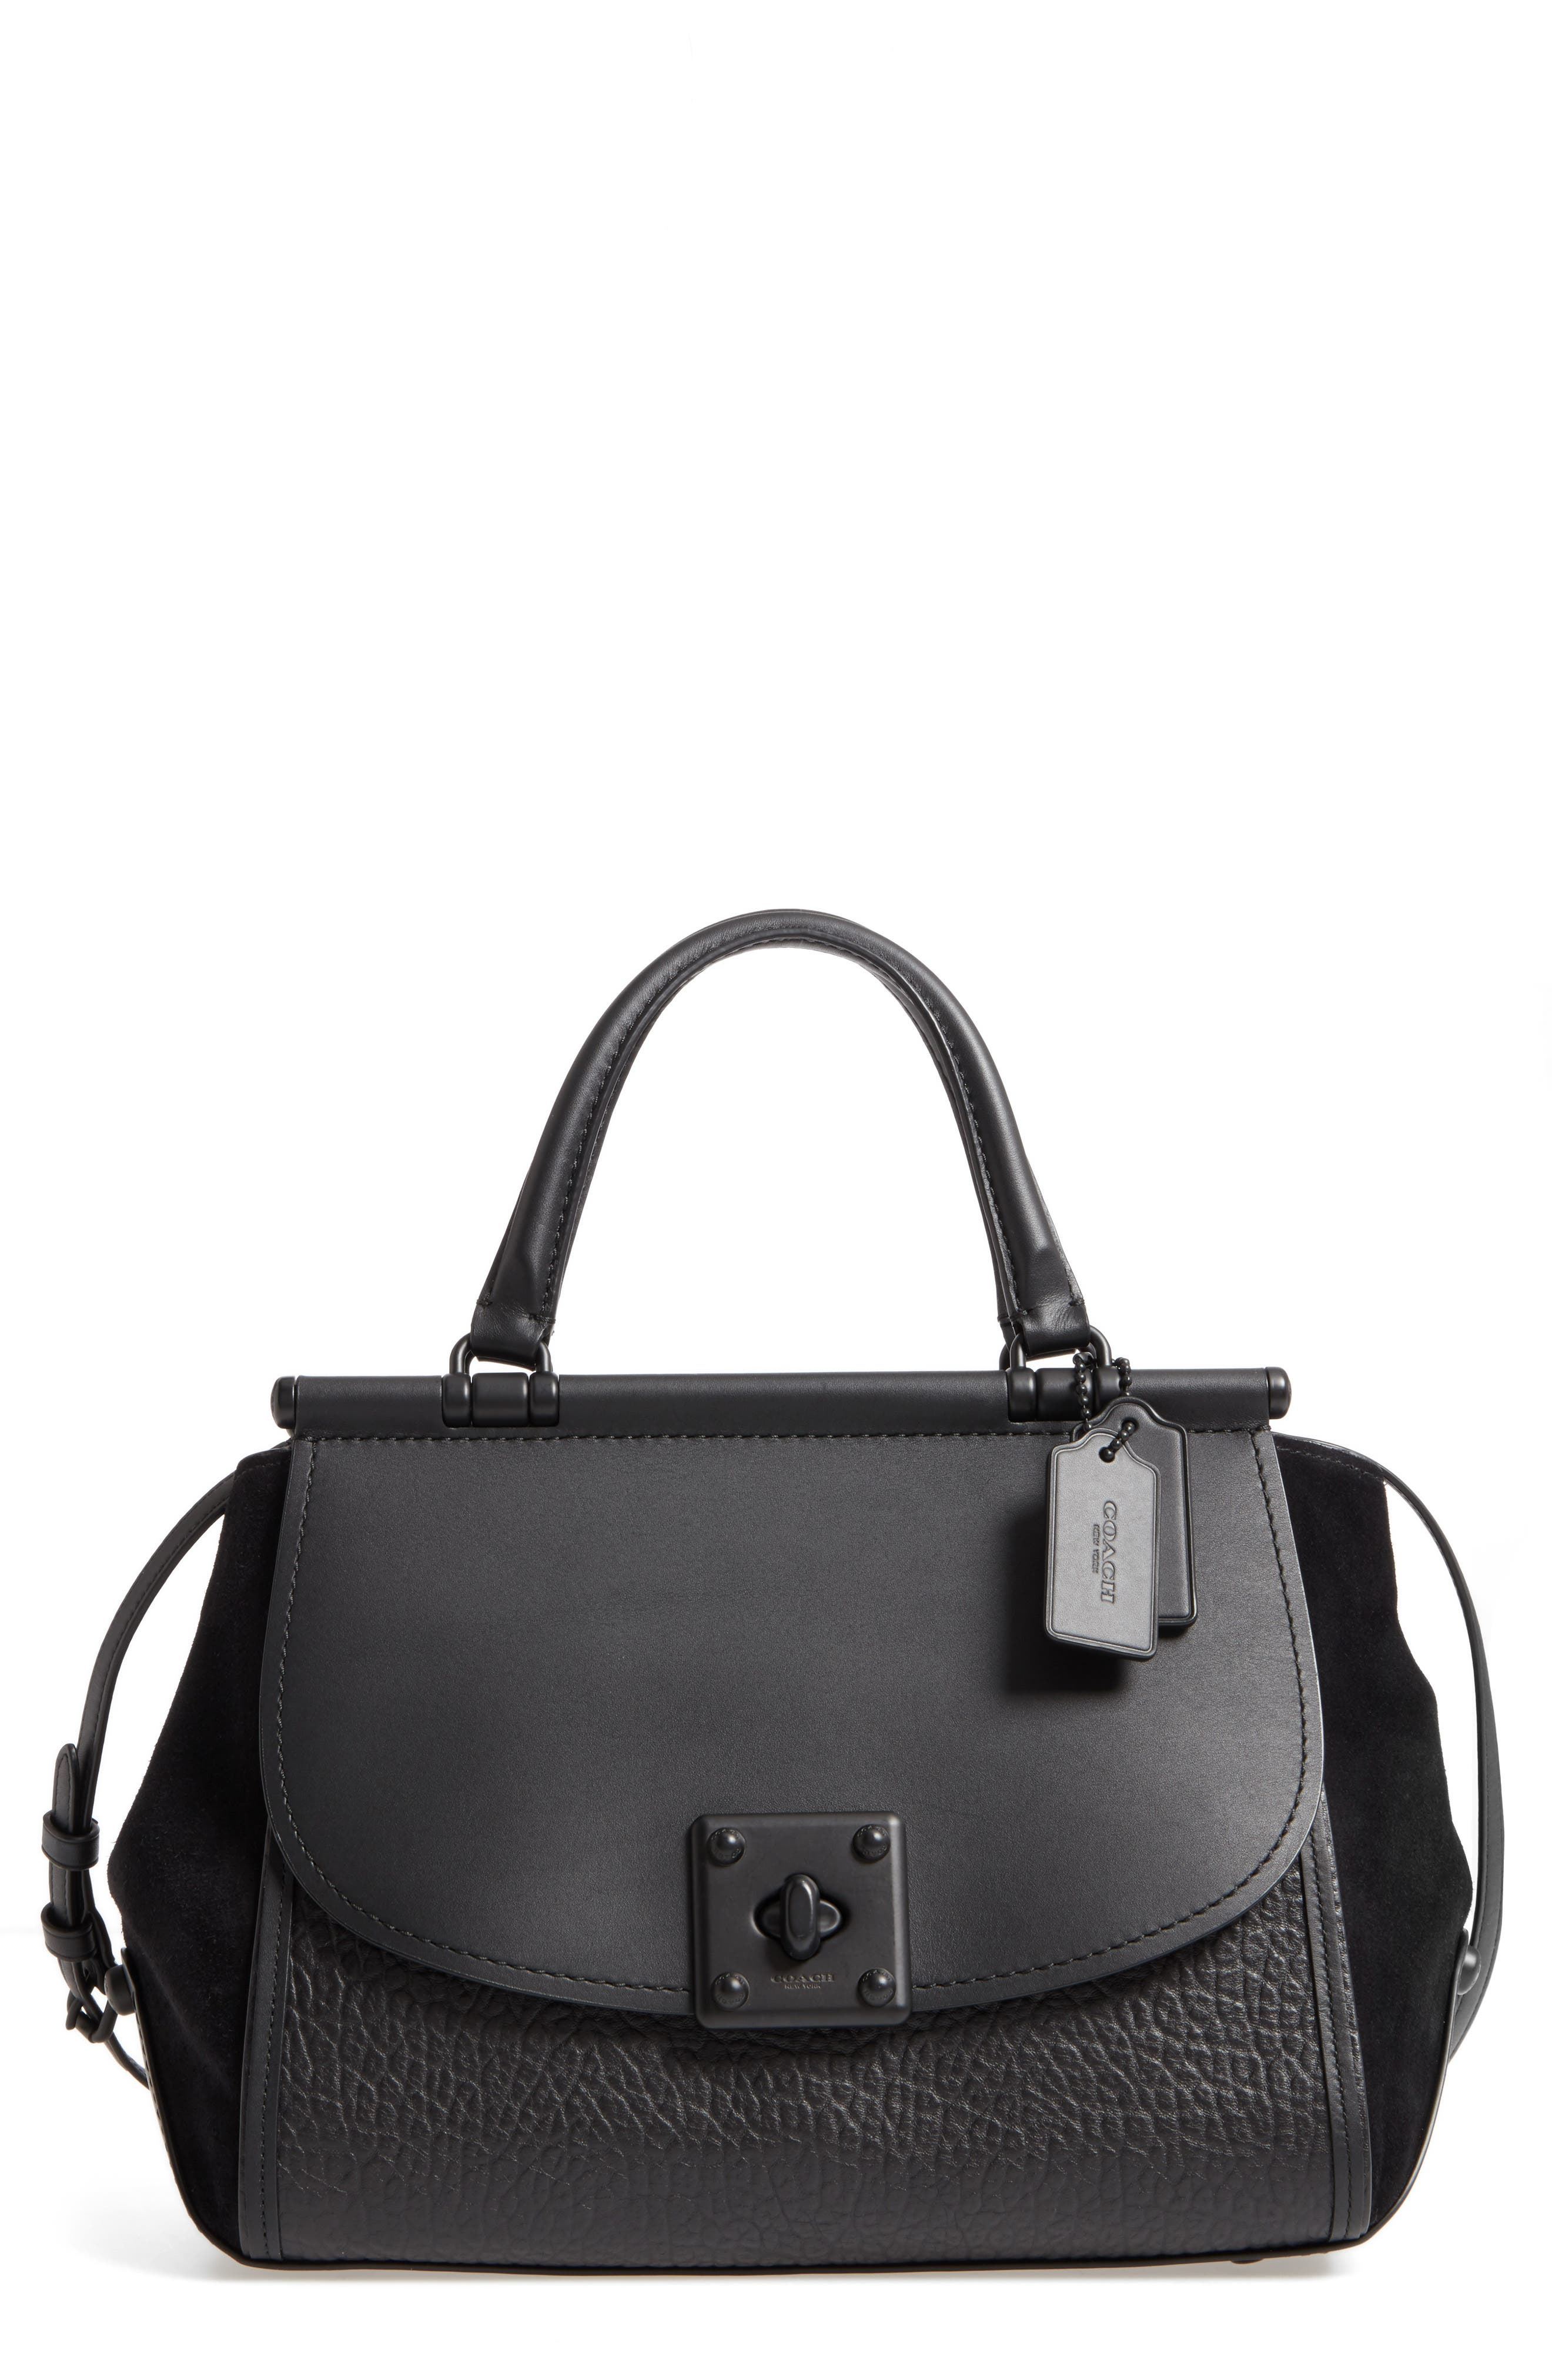 COACH Mixed Leather Satchel